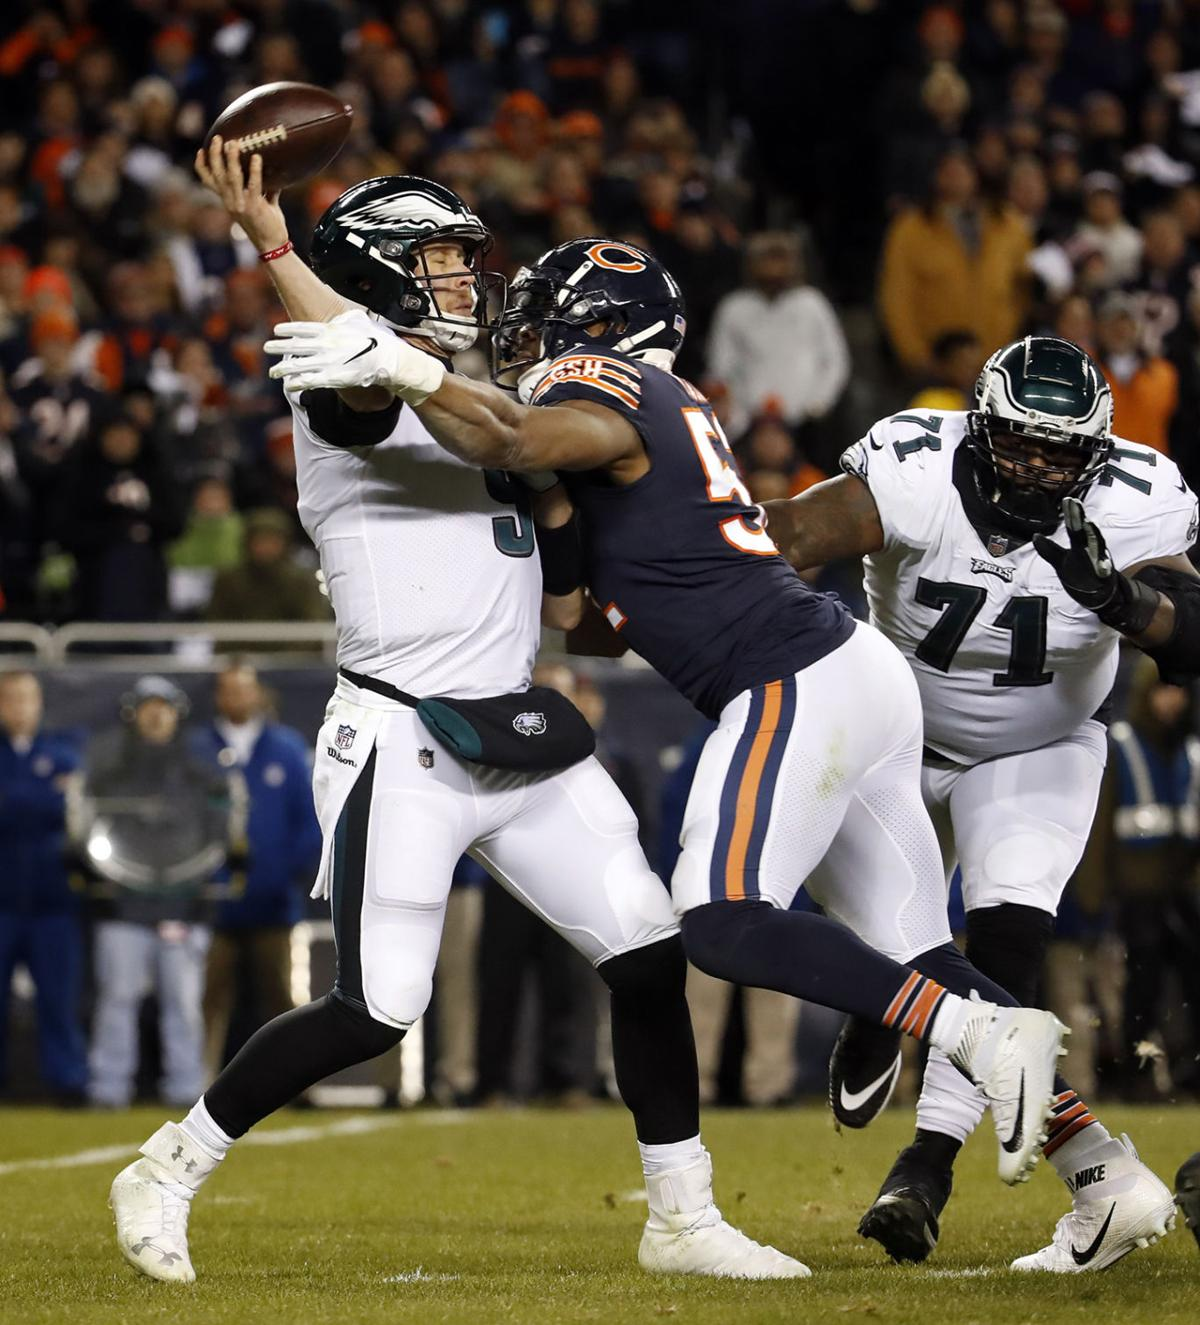 Philadelphia Eagles quarterback Nick Foles (9) gets a pass off as he's hit by Chicago Bears outside linebacker Khalil Mack (52) in the fourth quarter during the NFC Wild Card game on Sunday, Jan. 6, 2019 at Soldier Field in Chicago, Ill. The Eagles beat the Bears, 16-15.